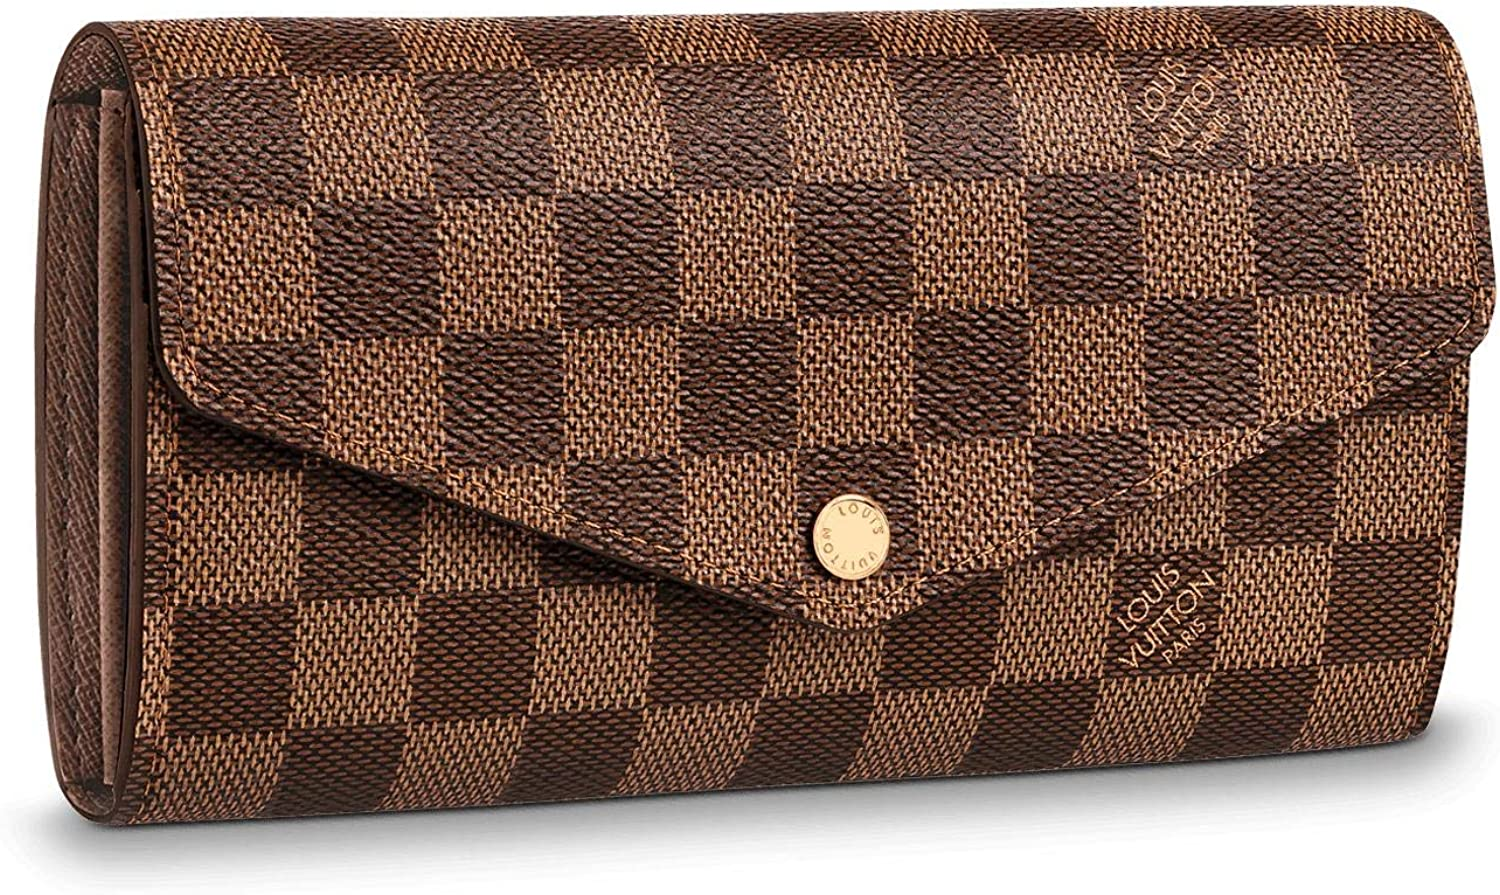 Louis Vuitton Sarah Wallet...